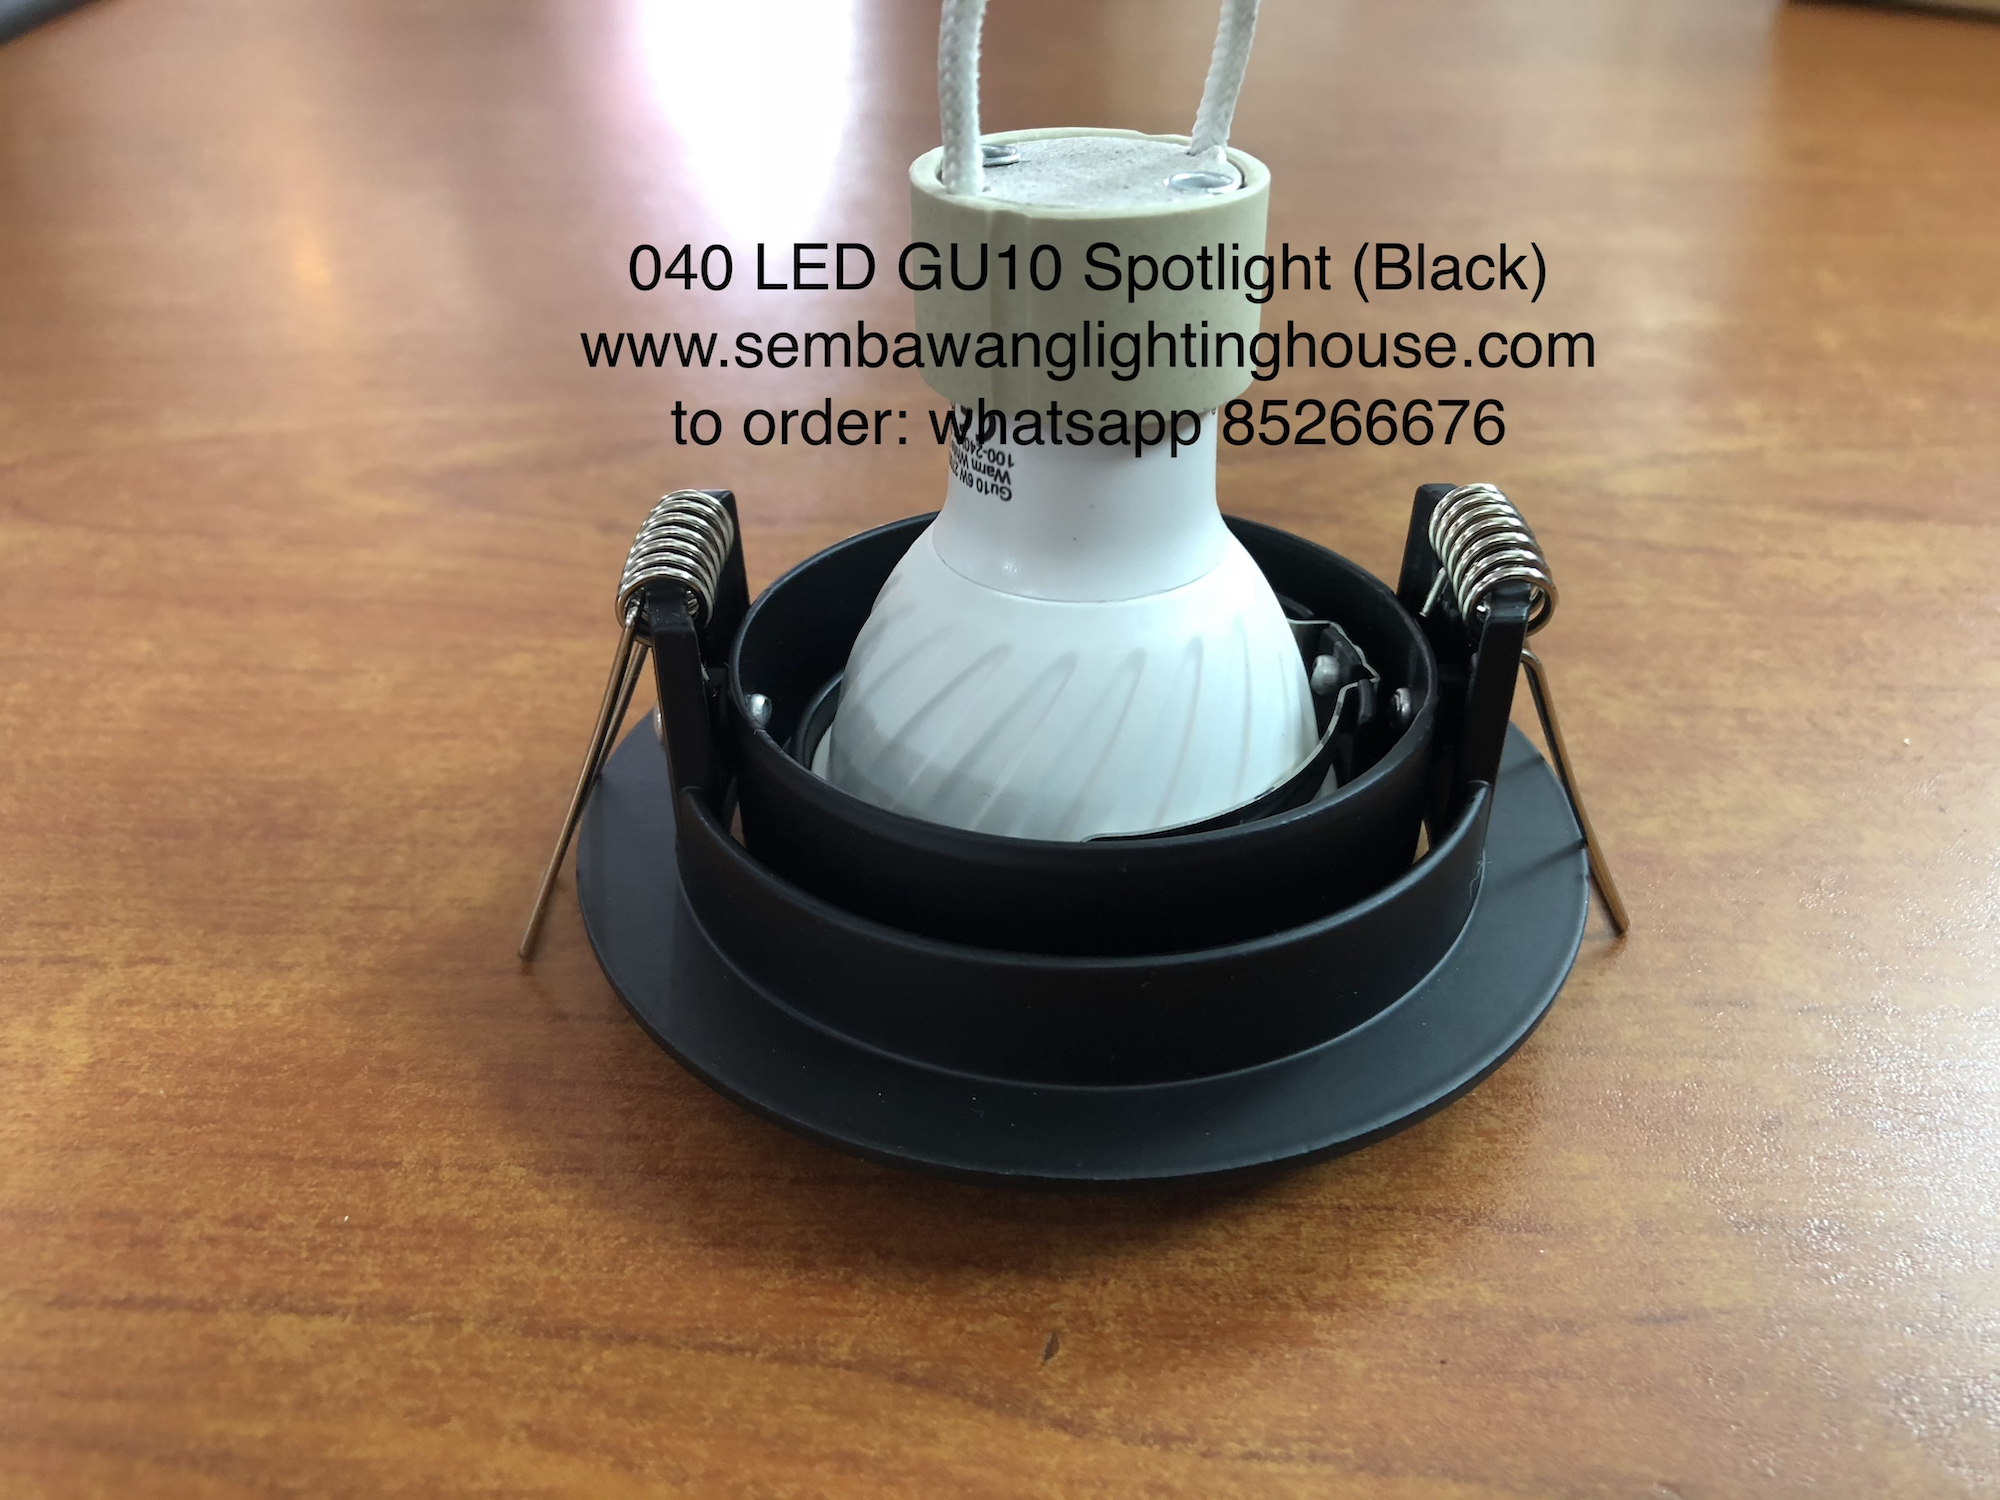 040-bk-led-spotlight-gu10-c.jpg